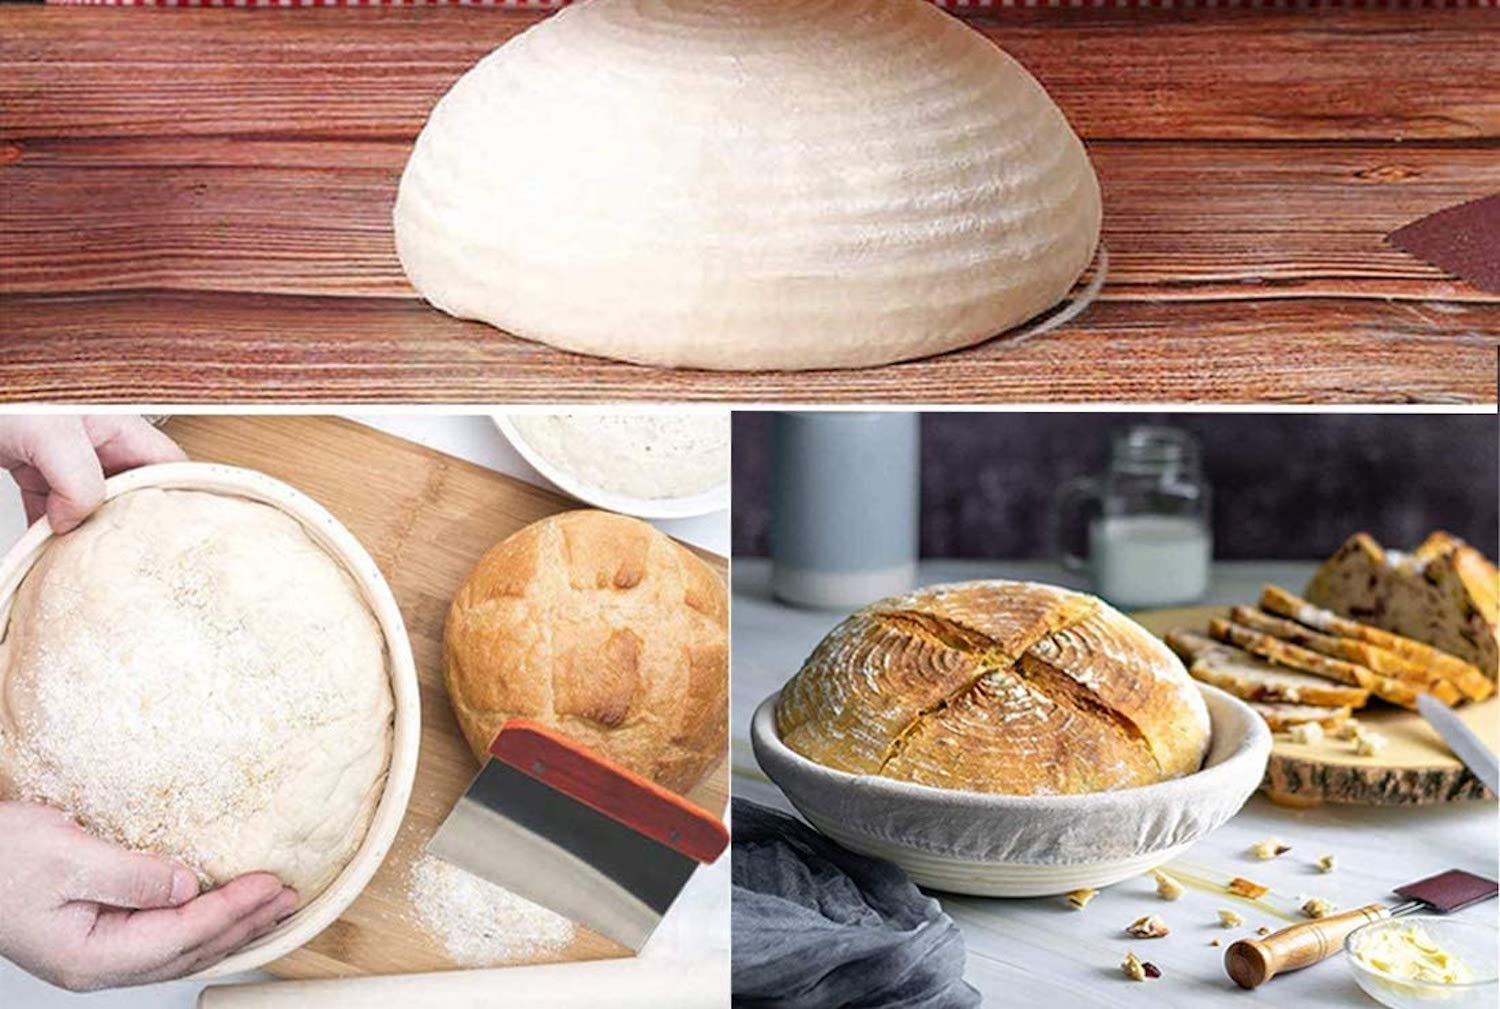 Someone making sourdough bread with the ttmagic Sourdough Bread-making Kit.